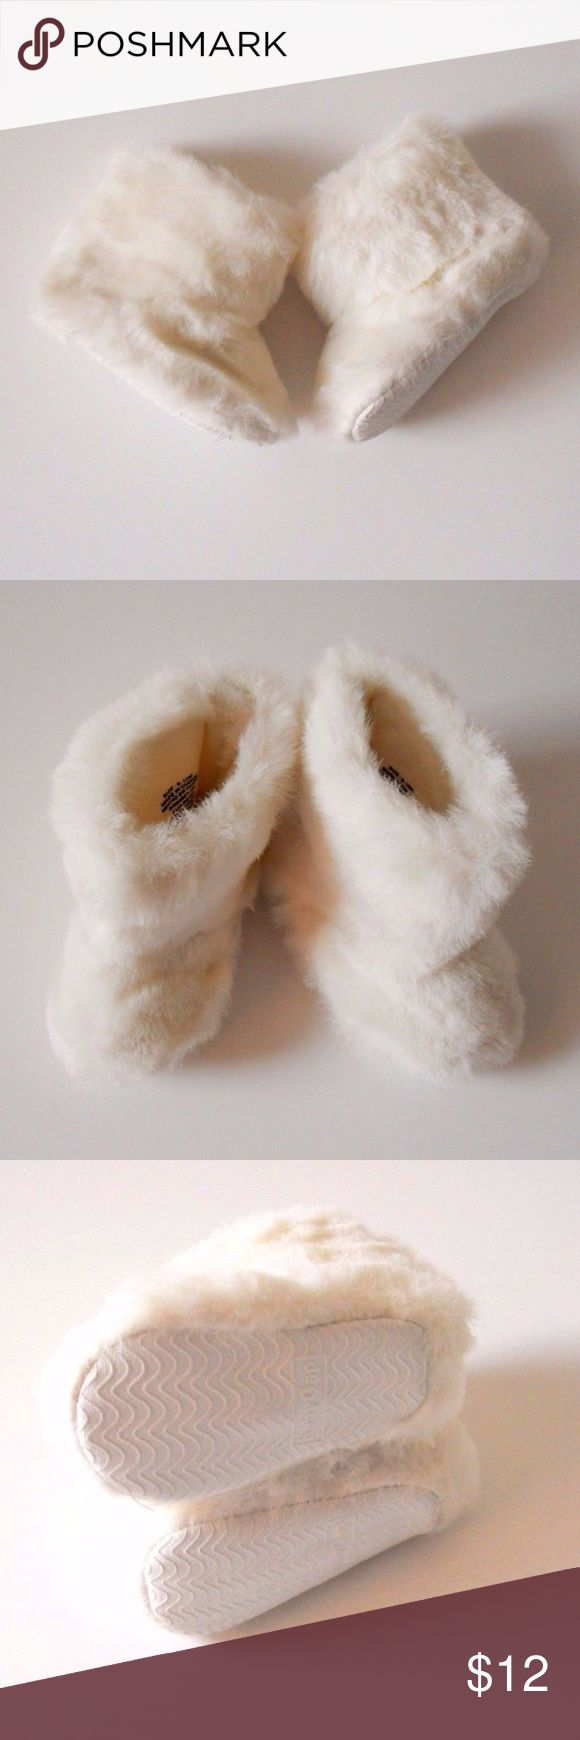 Baby Gap Furry Booties Baby 6-9M Sweet little furry booties for the snowy weather!  babyGap  Ivory Frost Velcro enclosure on the back for easy on and off.  Size 6-9 Months  Pre-Walkers   Good condition Cute for baby! Gap Shoes Boots